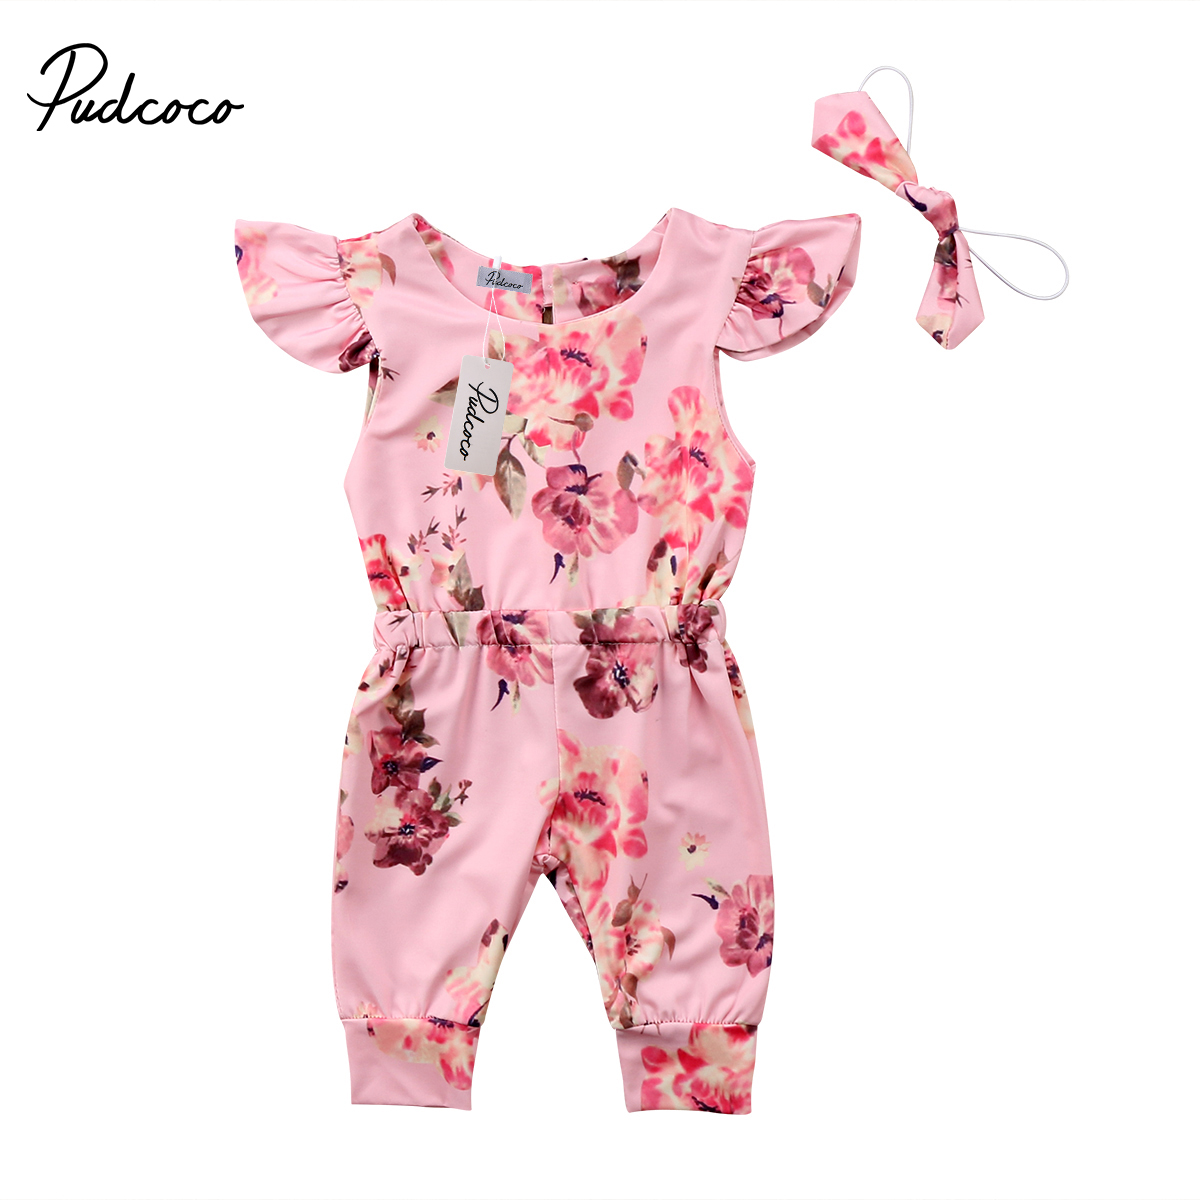 Pudcoco Toddler Infant Baby Girls Romper Floral Romper Sunsuit Summer Flying Sleeve Jumpsuit Cotton Clothes Outfit